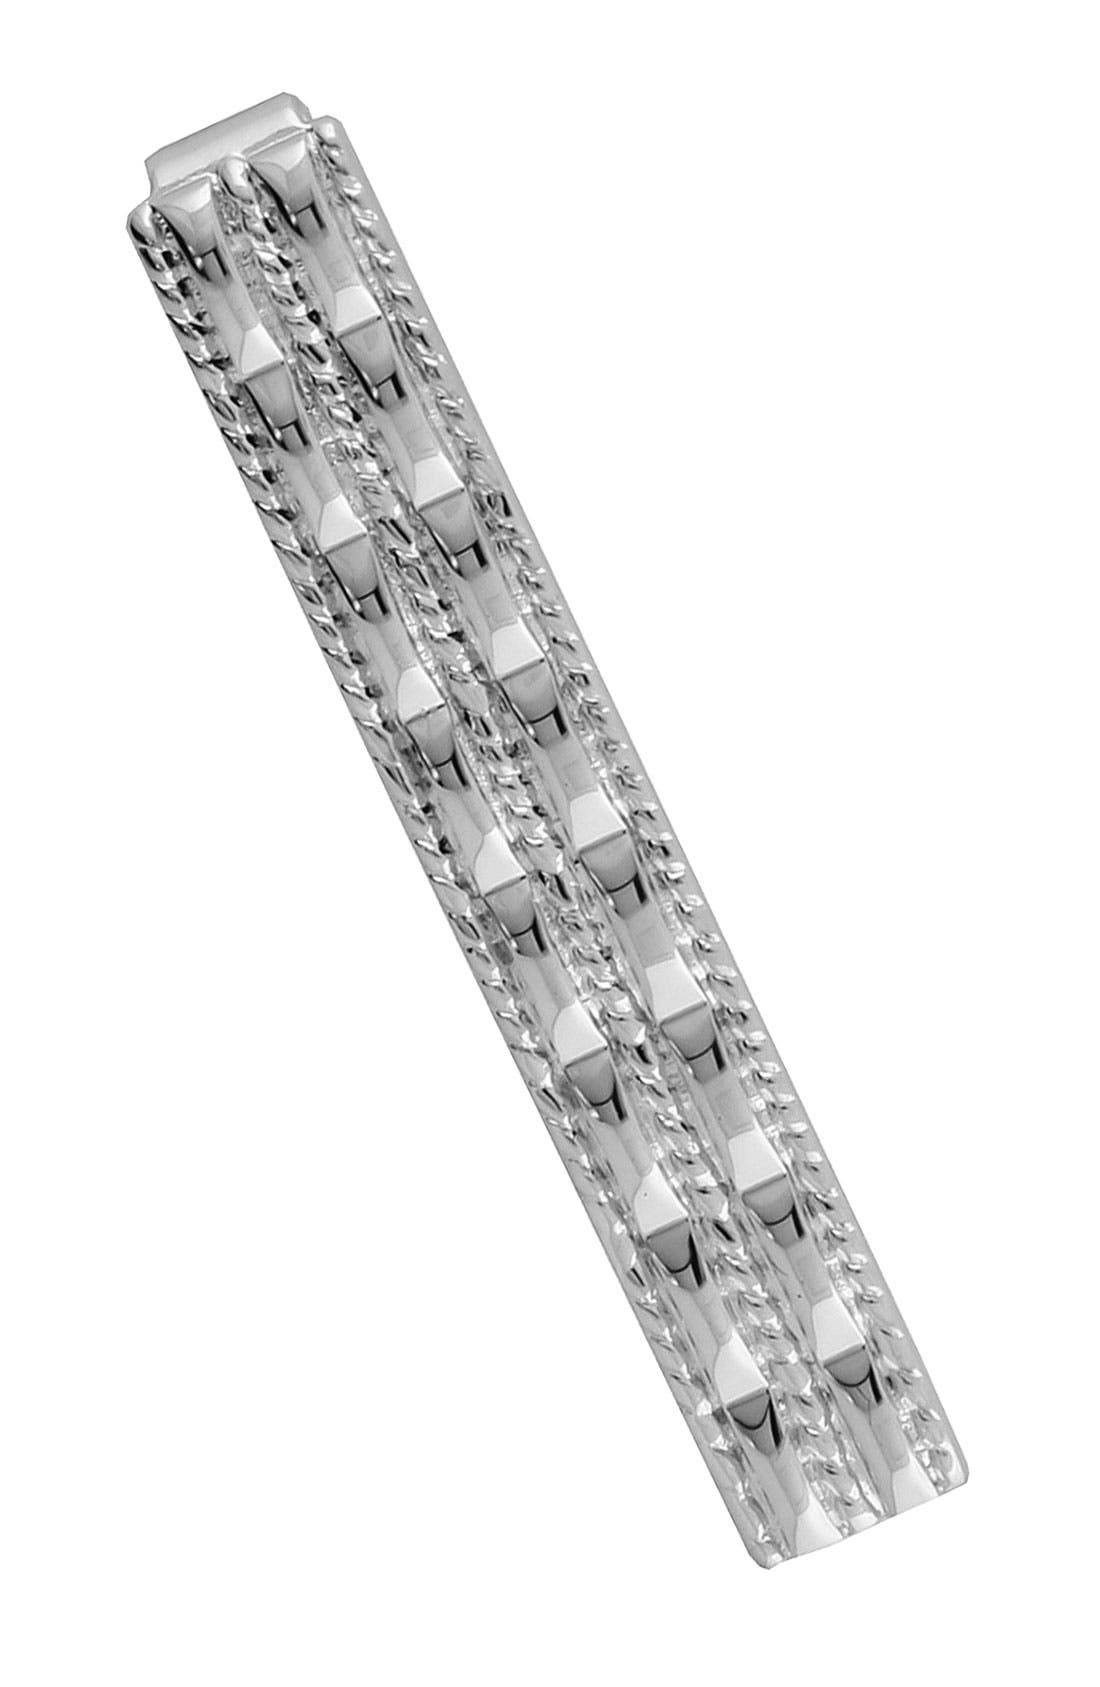 Alternate Image 1 Selected - David Donahue Sterling Silver Tie Clip